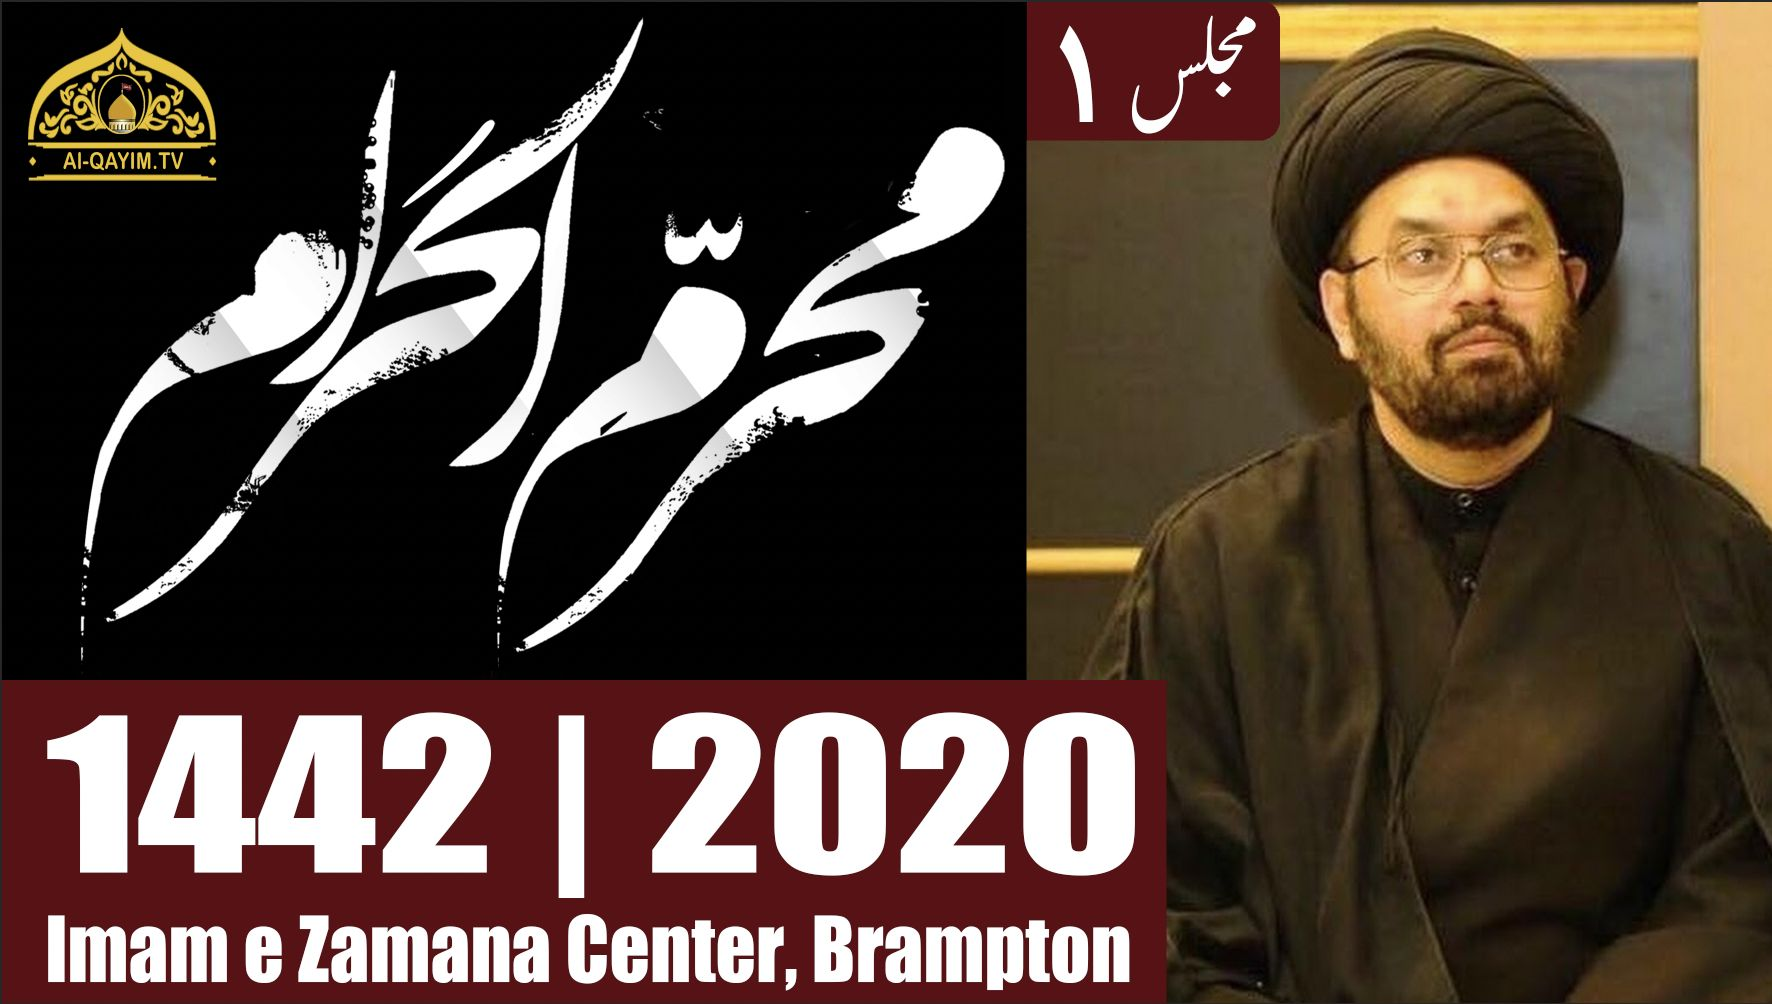 Imam e Zamana Center, Brampton